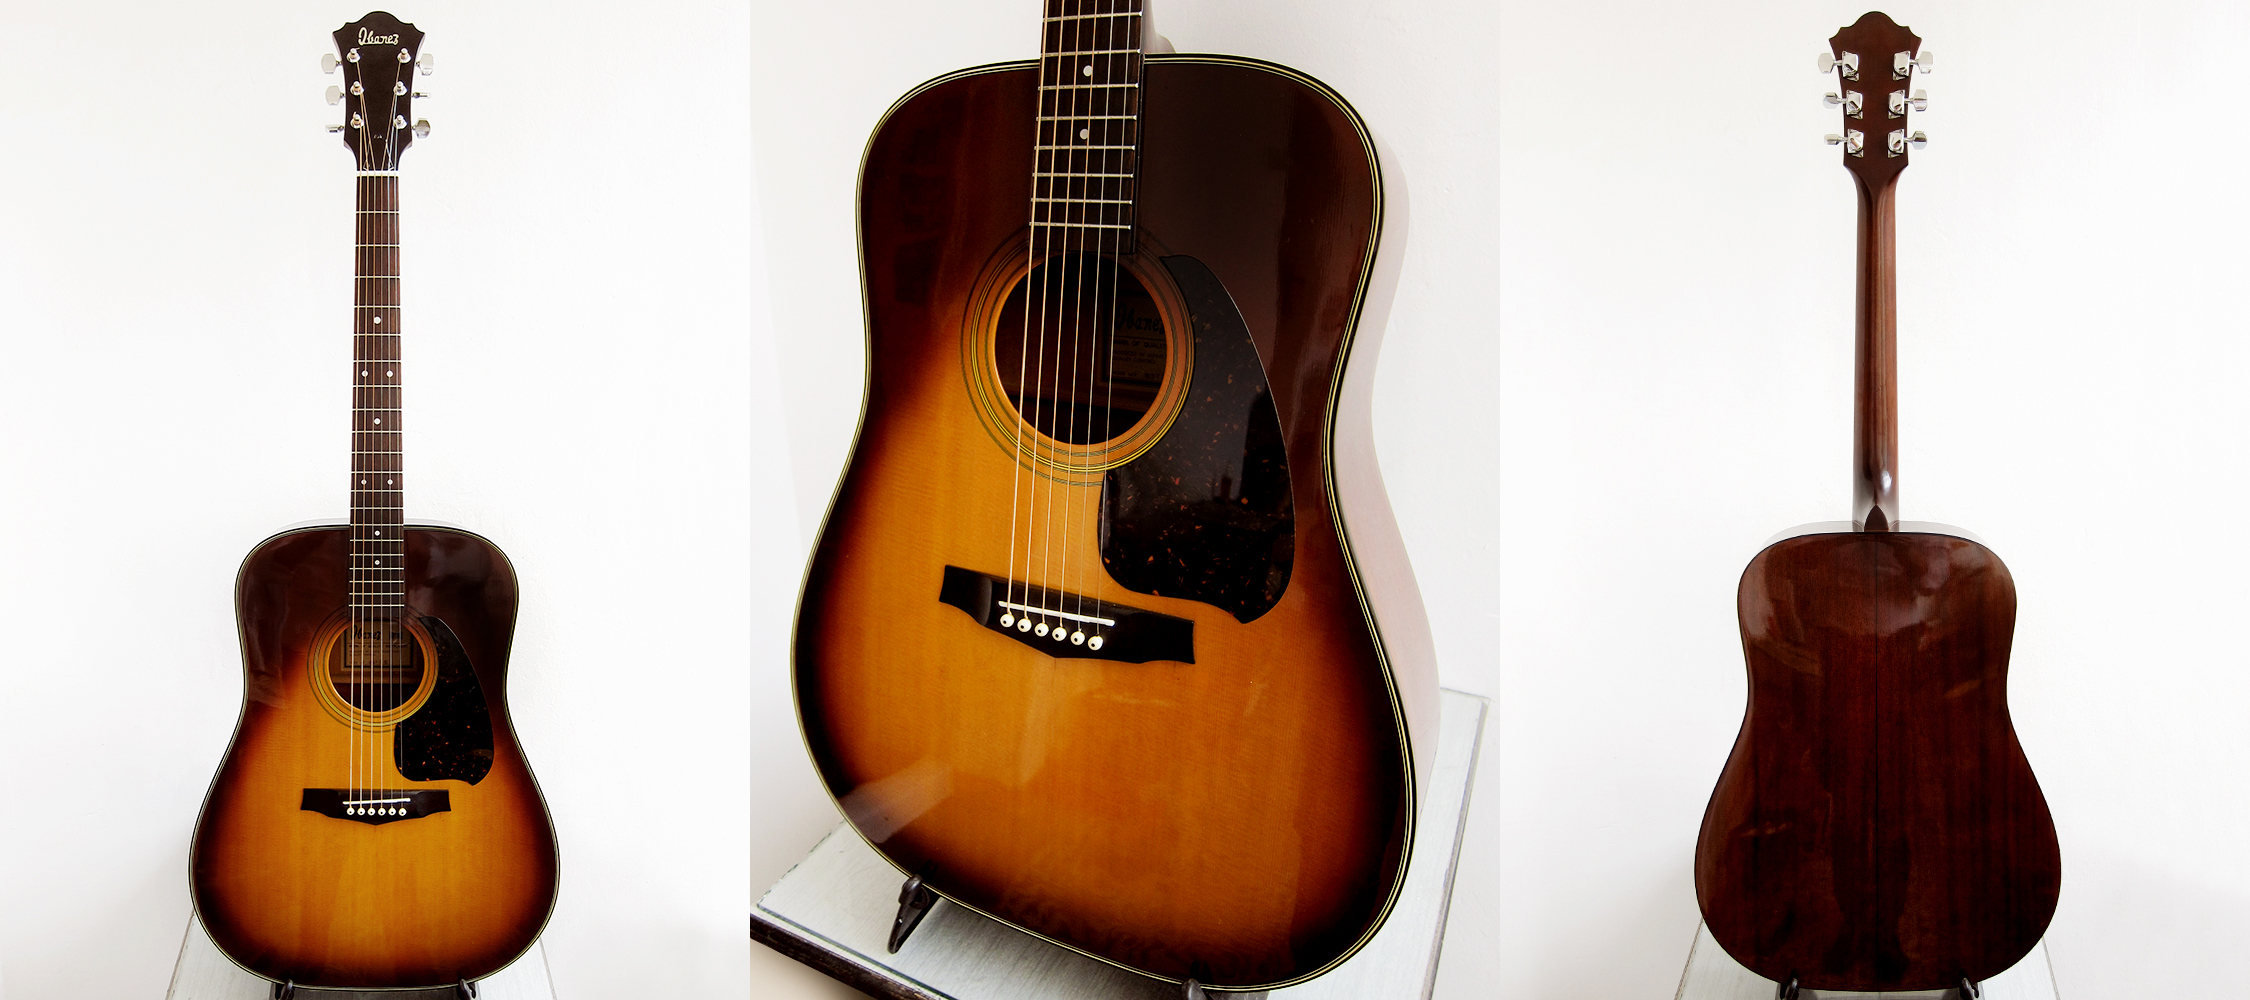 861e6a1740d Ibanez Vintage 637 BS Made in Japan 1978 ...